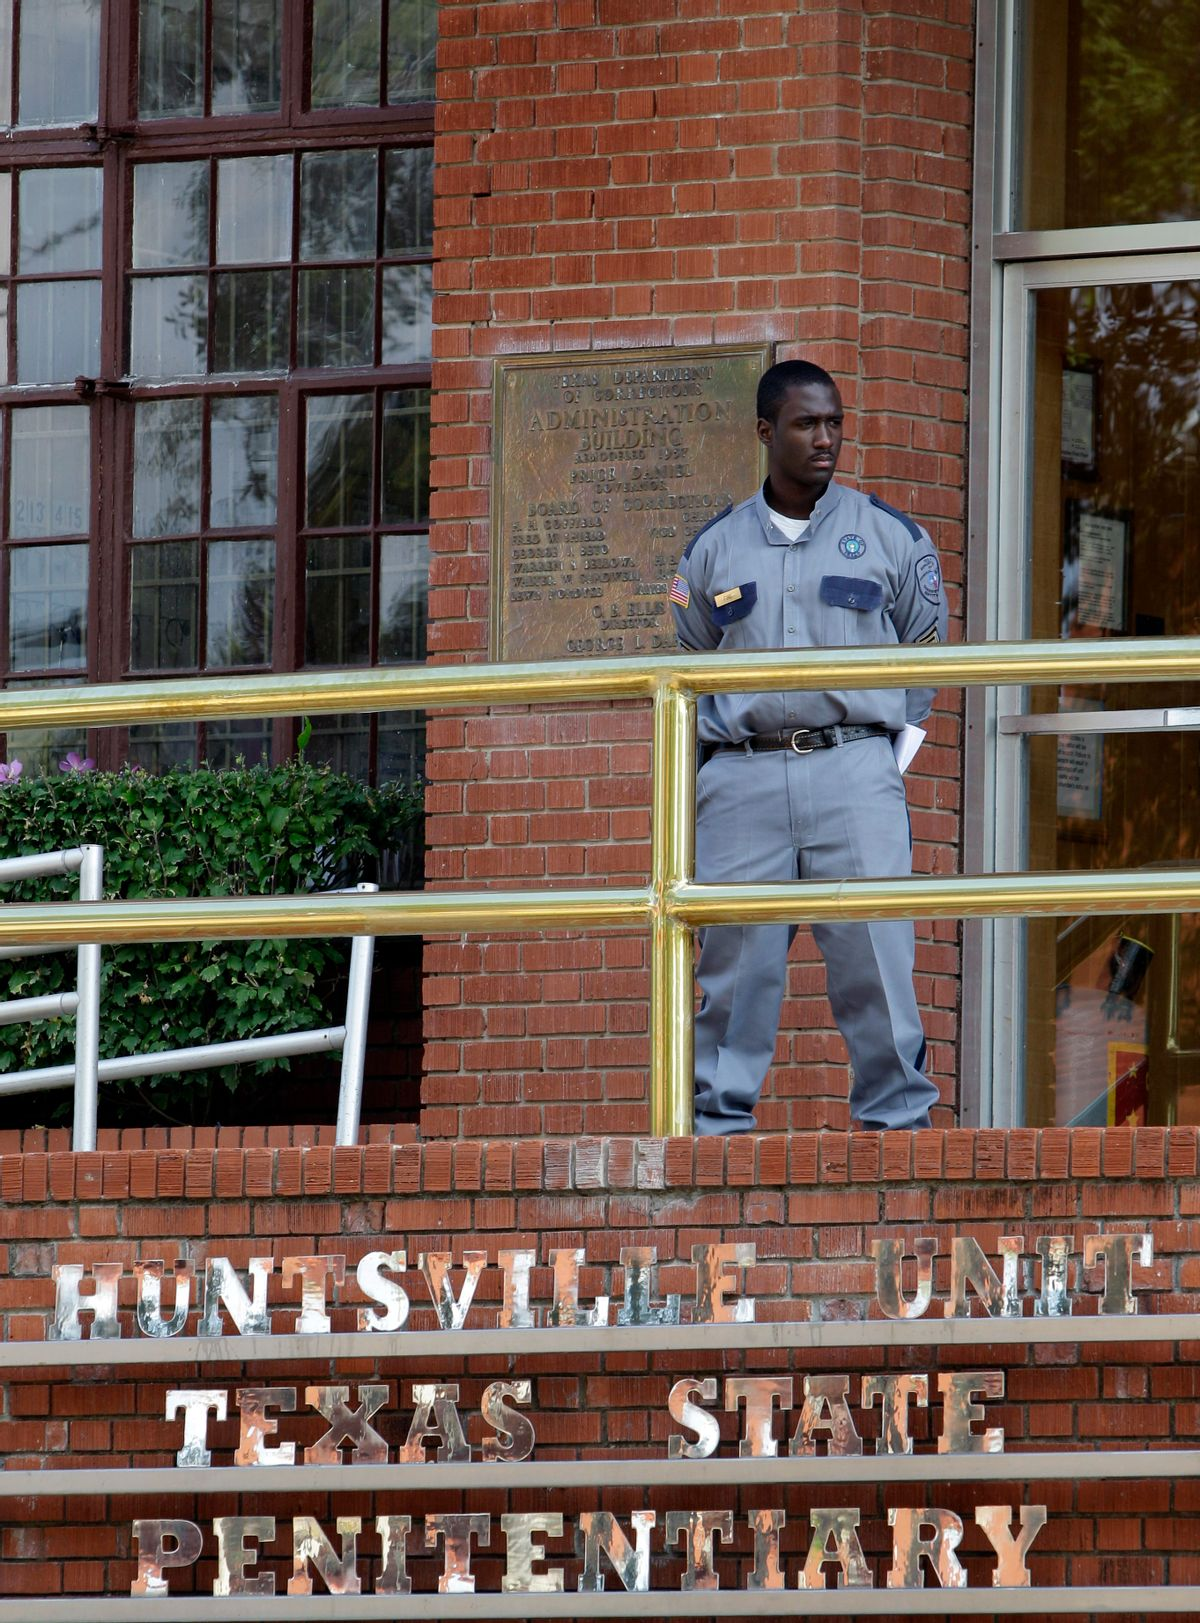 FILE - In this Sept. 21, 2011 file photo, a corrections officer keeps watch outside the Texas Department of Criminal Justice Huntsville Unit in Huntsville, Texas.  ((AP Photo/David J. Phillip, File))